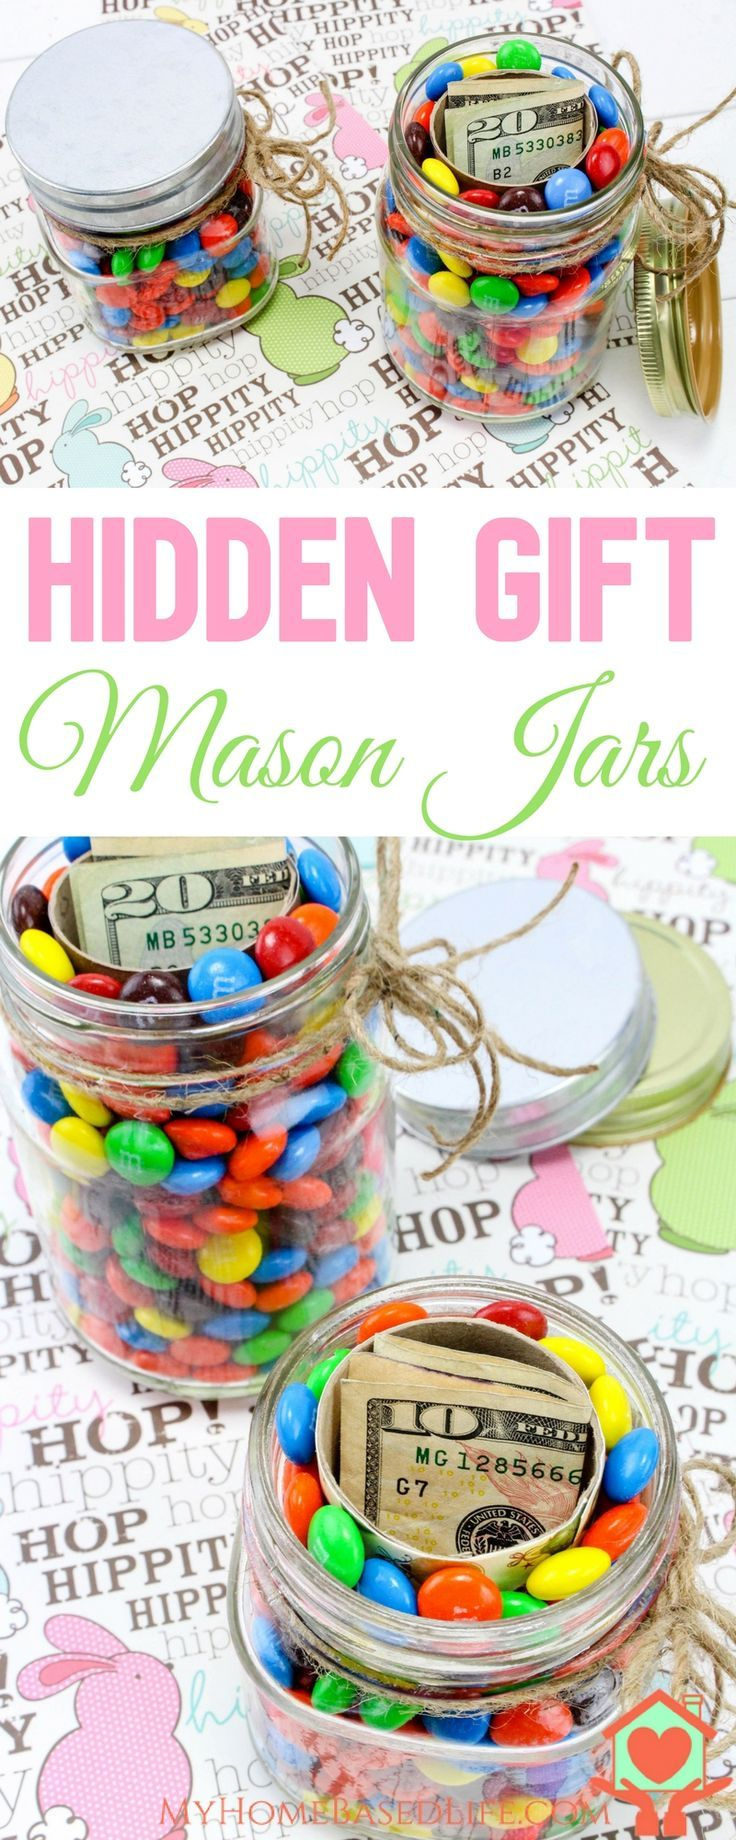 Perfect gift idea for all ages hidden gifts in a jar hidden gift hidden gifts in a jar hidden gift jars christmas gift jars gifts in a jar christmas jar gift diy christmas gifts money negle Gallery